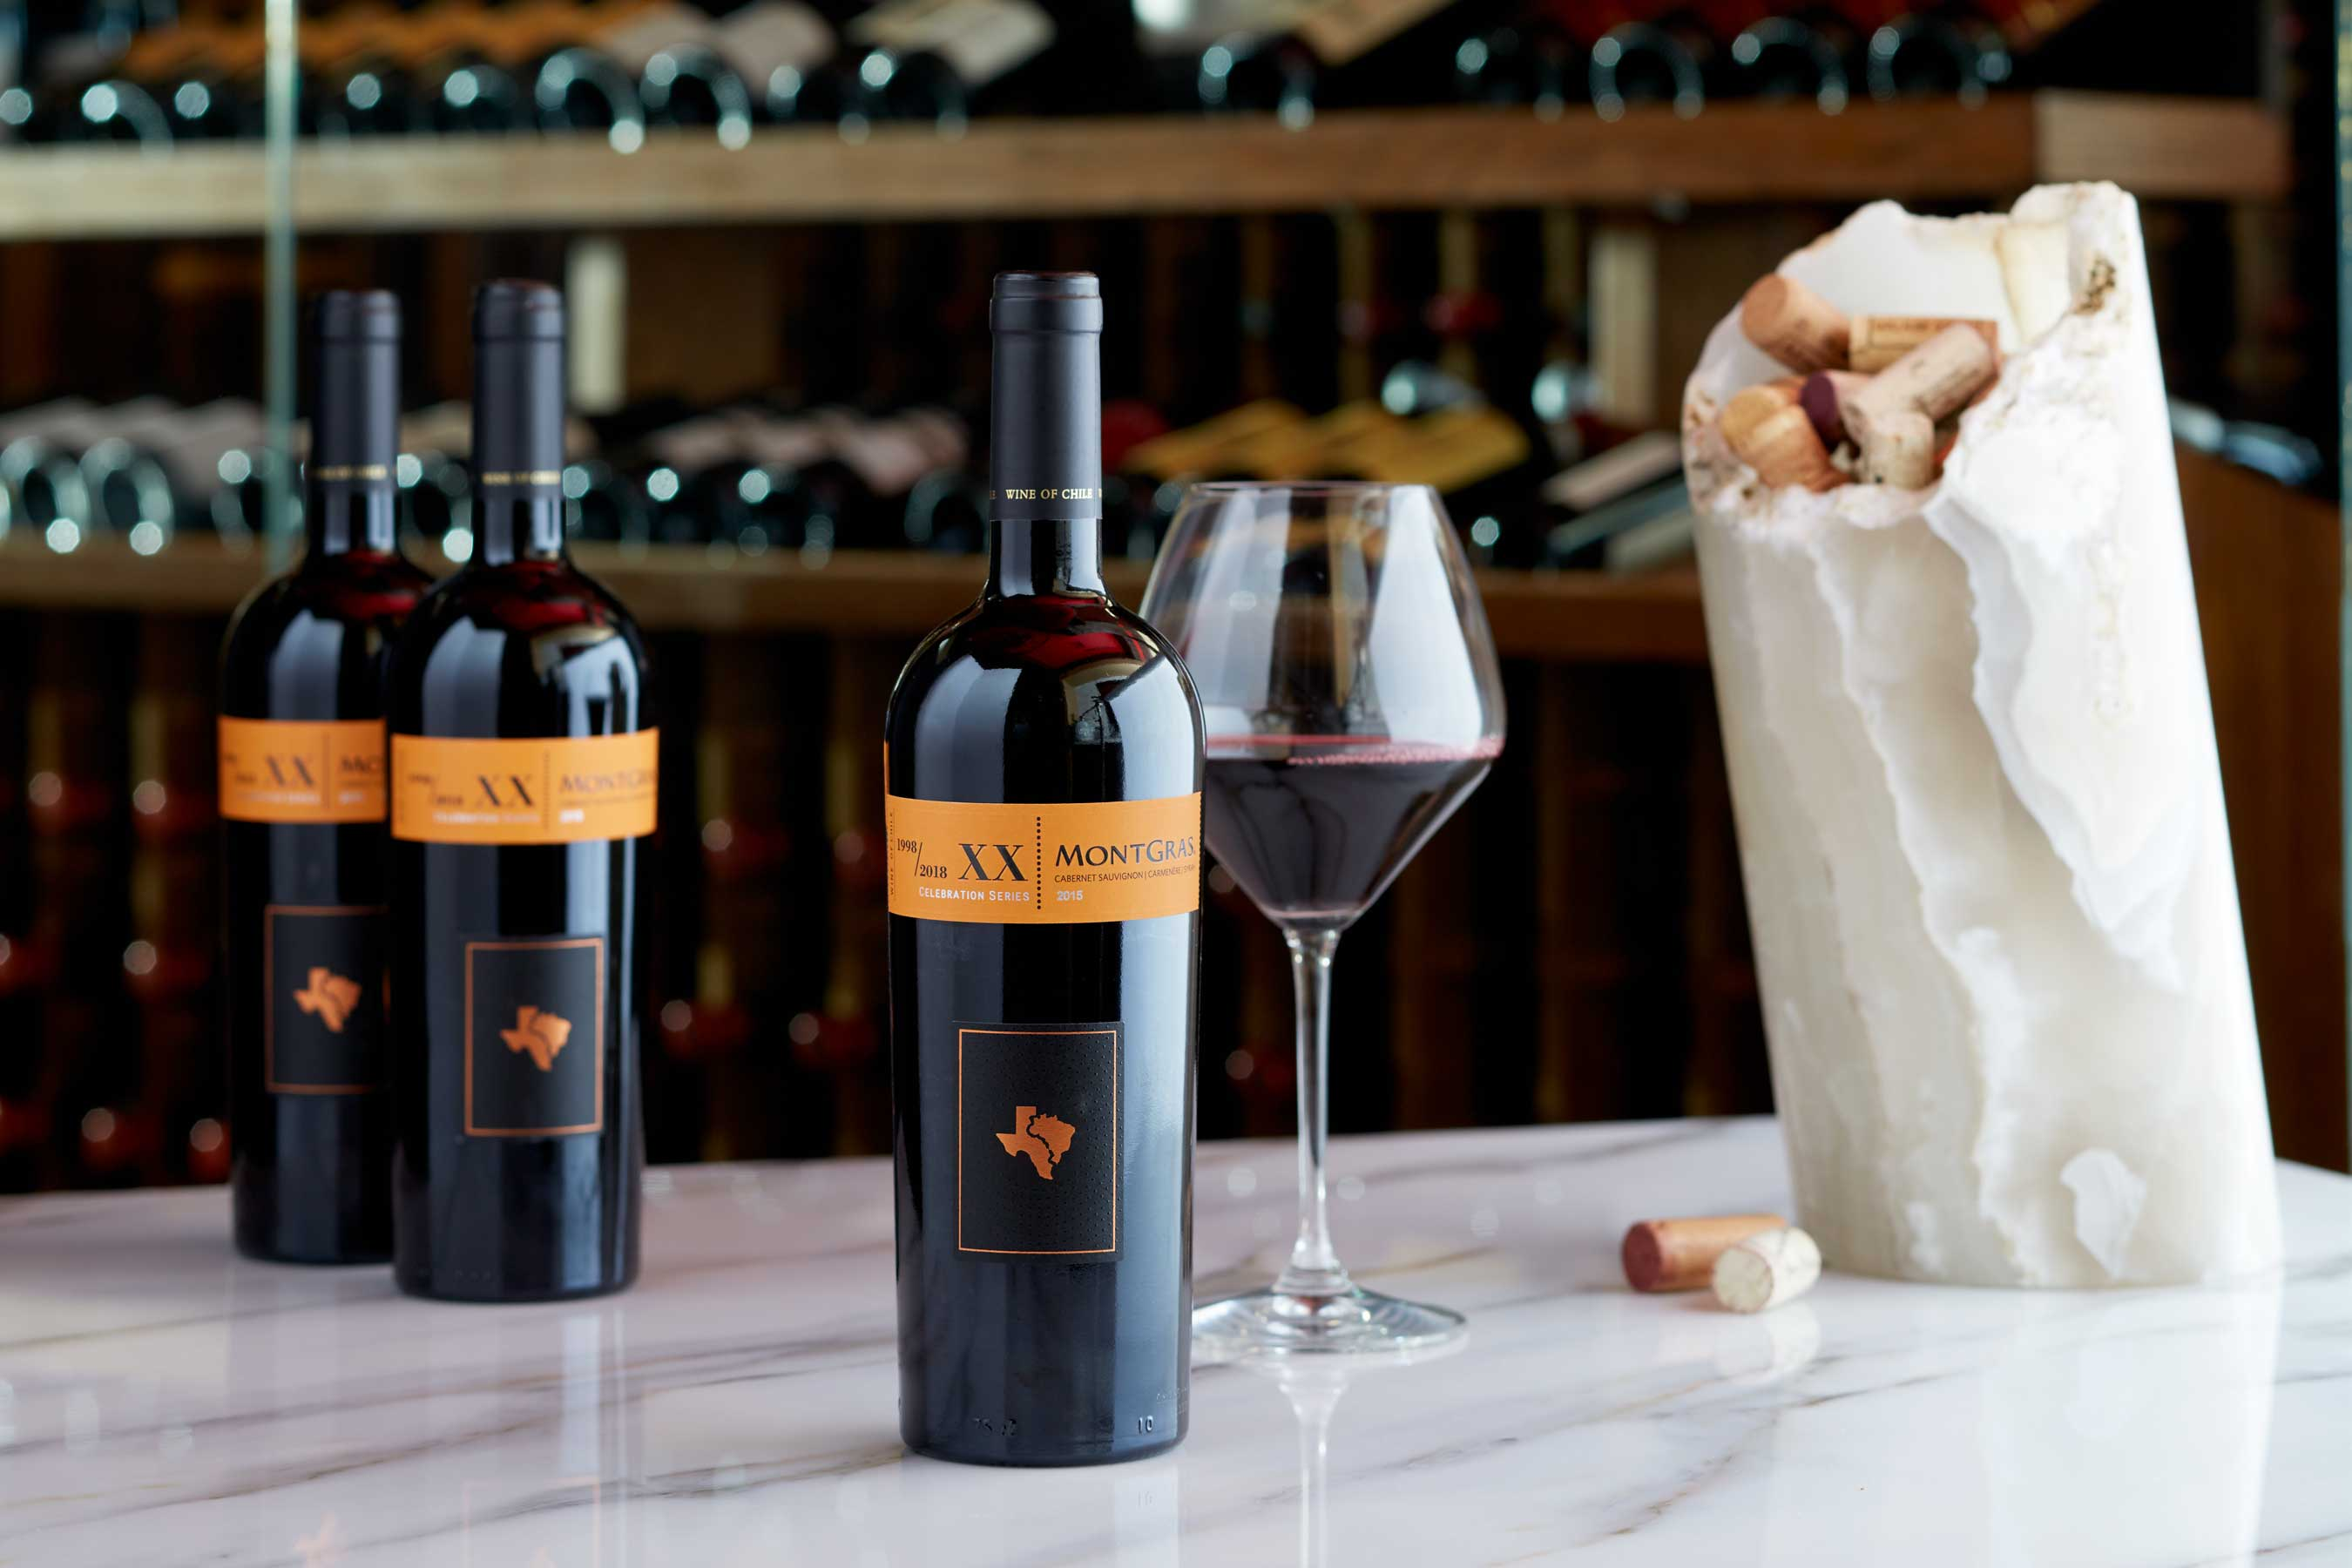 """Texas de Brazil toasts its milestone 20th anniversary with the limited release private label wine, XX """"Celebration Series"""" MontGras bottled by Chilean winemaker Santiago Margozzini."""